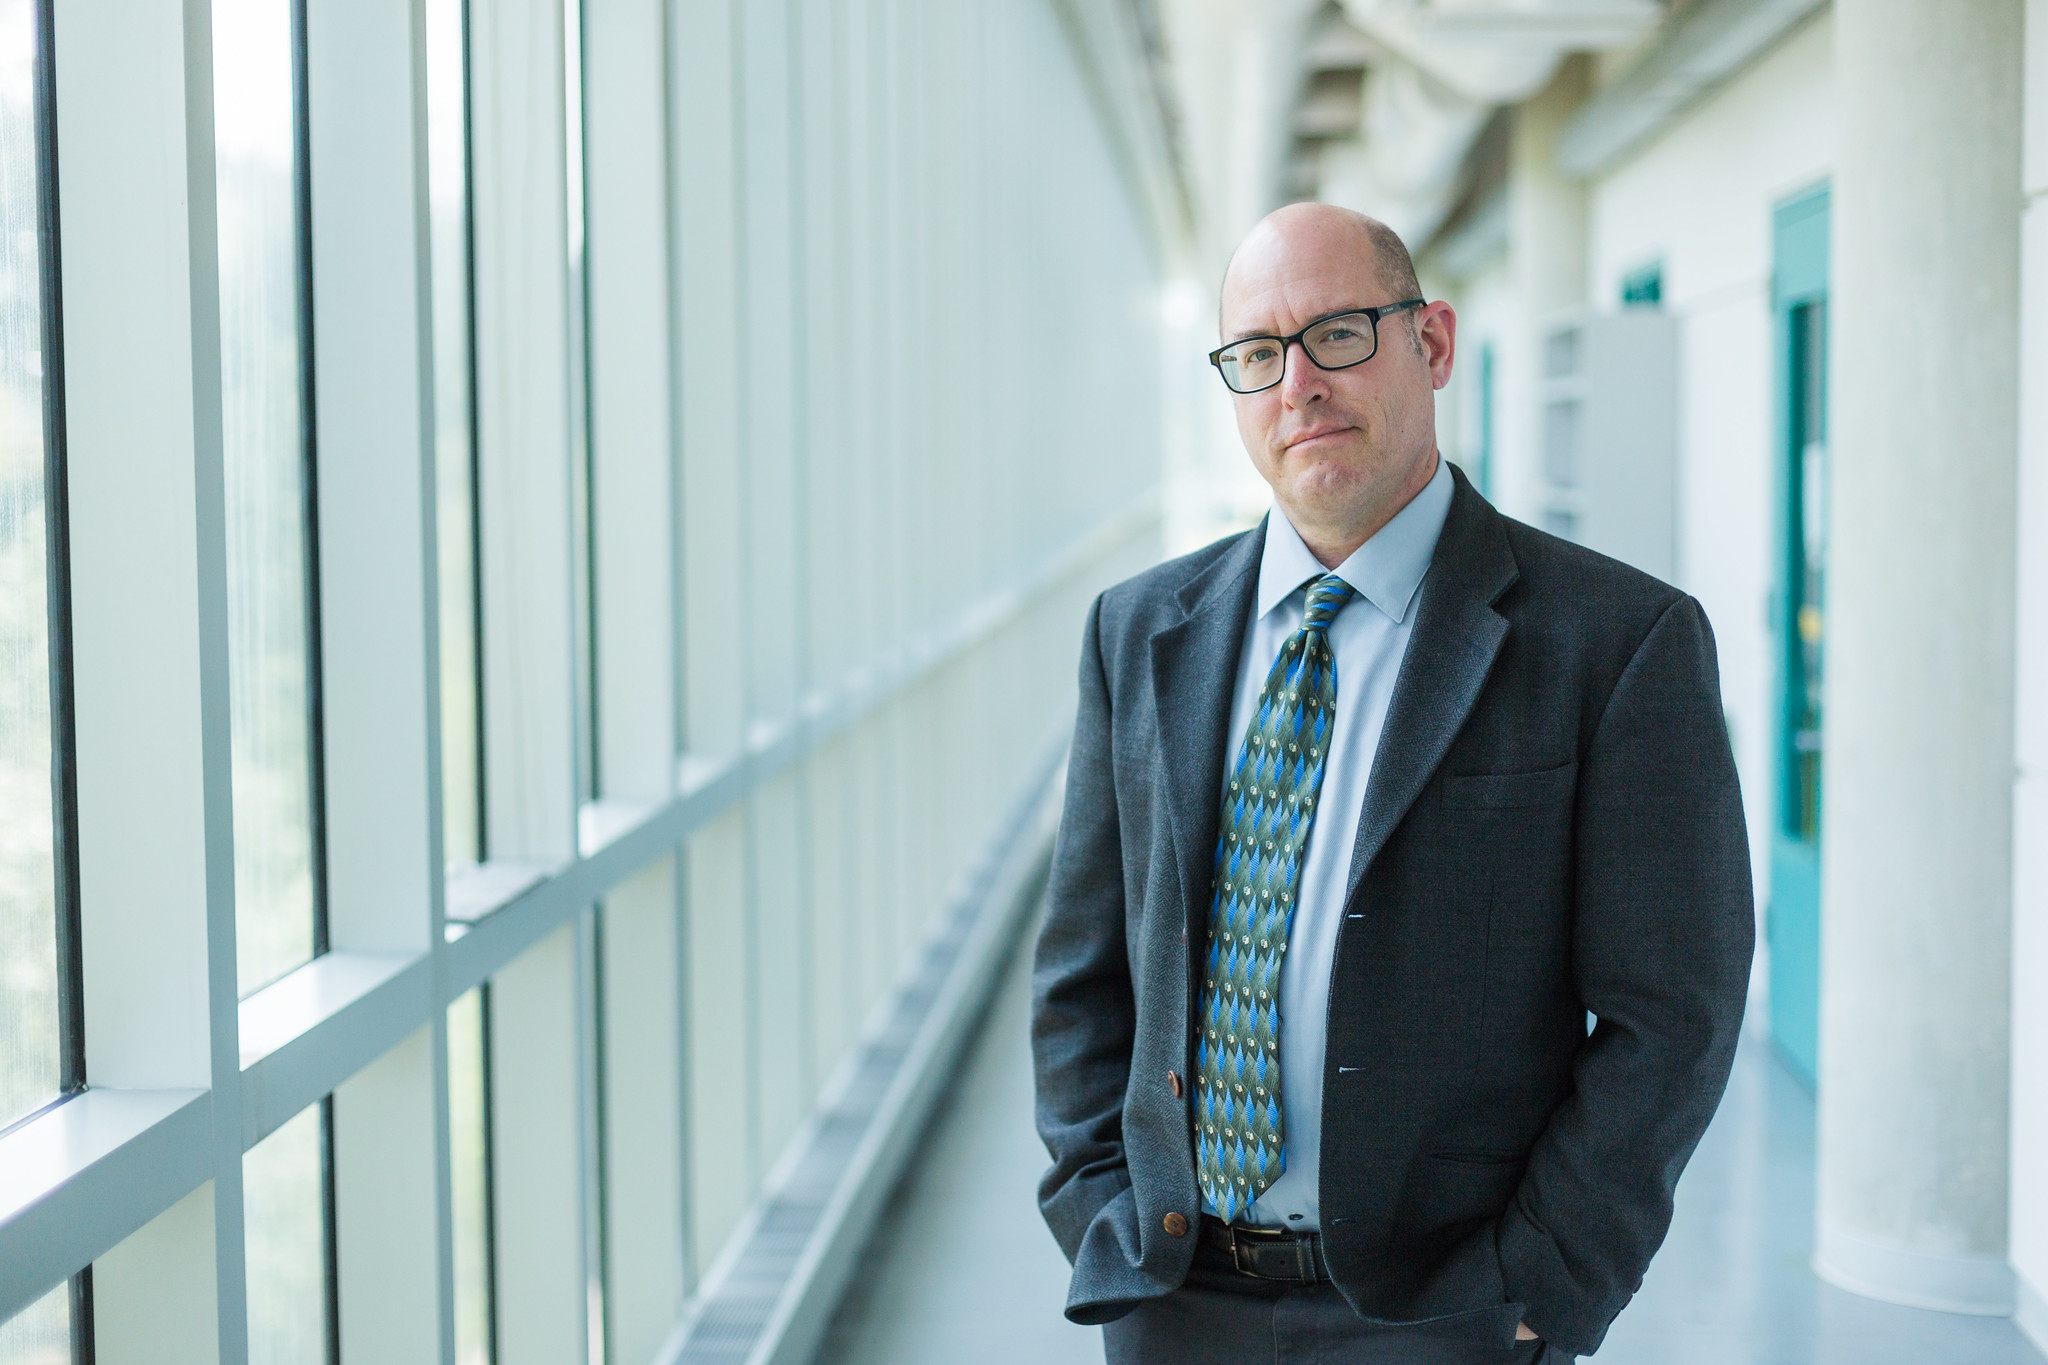 David Patrick has been named the interim dean of the Graduate School and vice provost for research at Western Washington University.